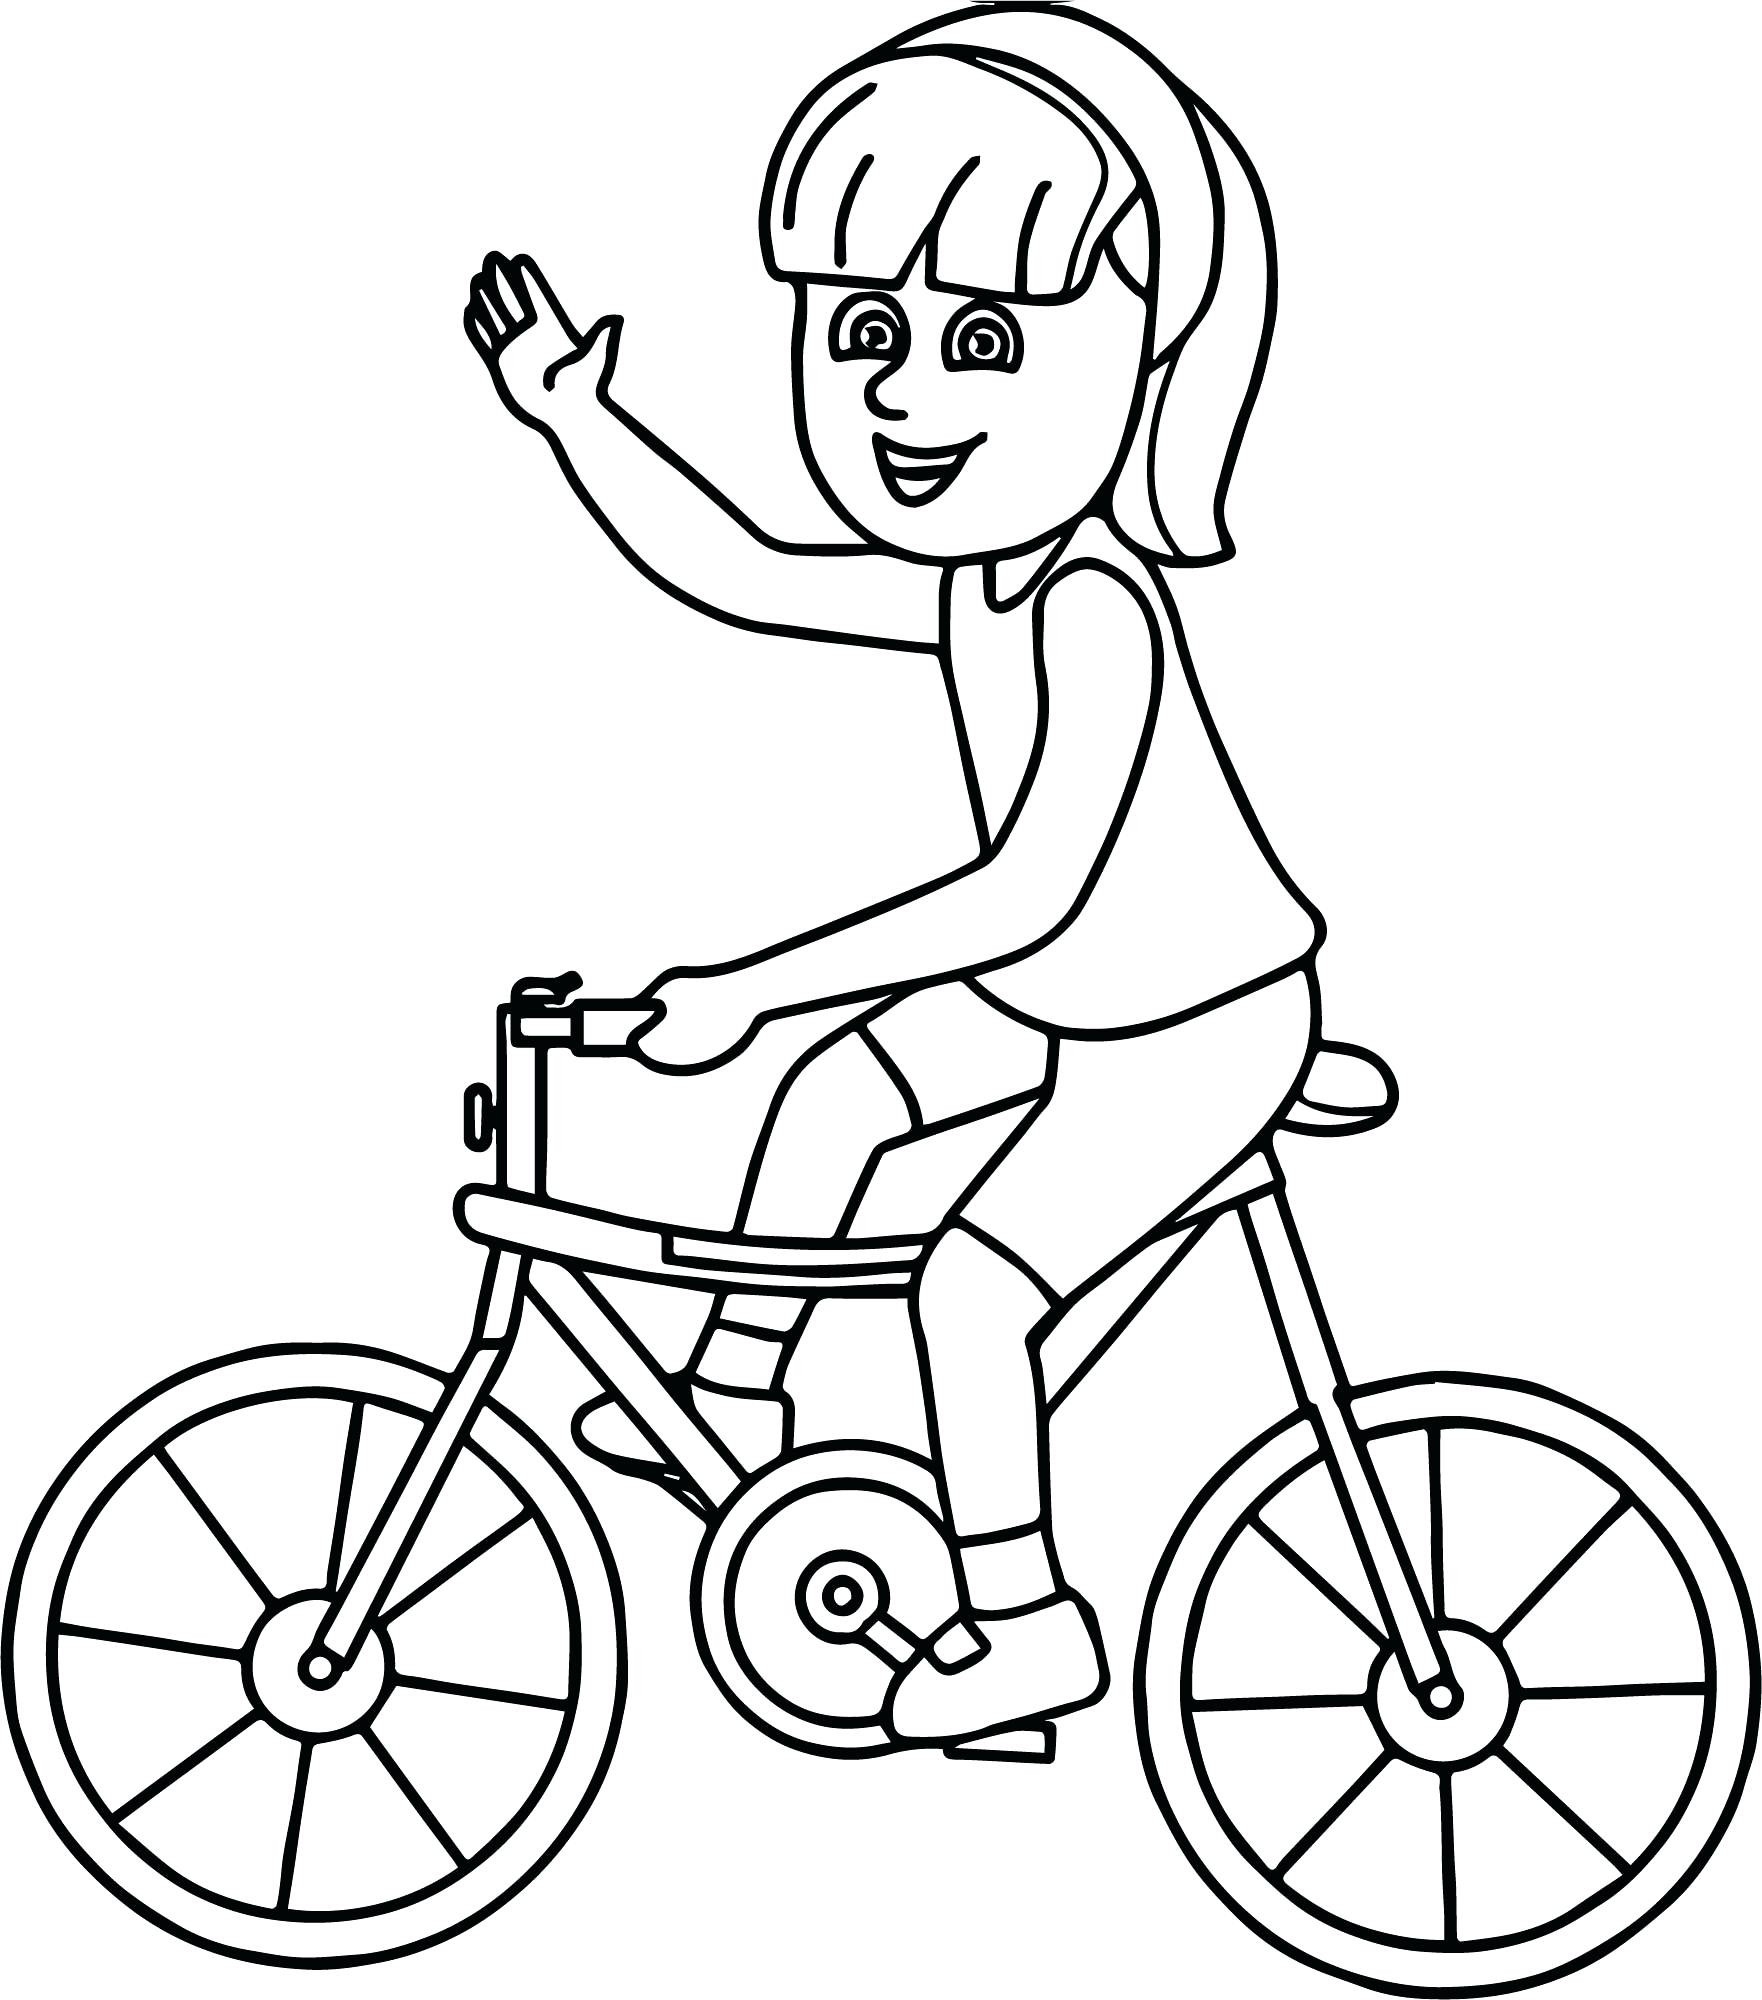 Santa On A Motorcycle Coloring Page With 20 Luxury Dirt Bike Pages Avaboard